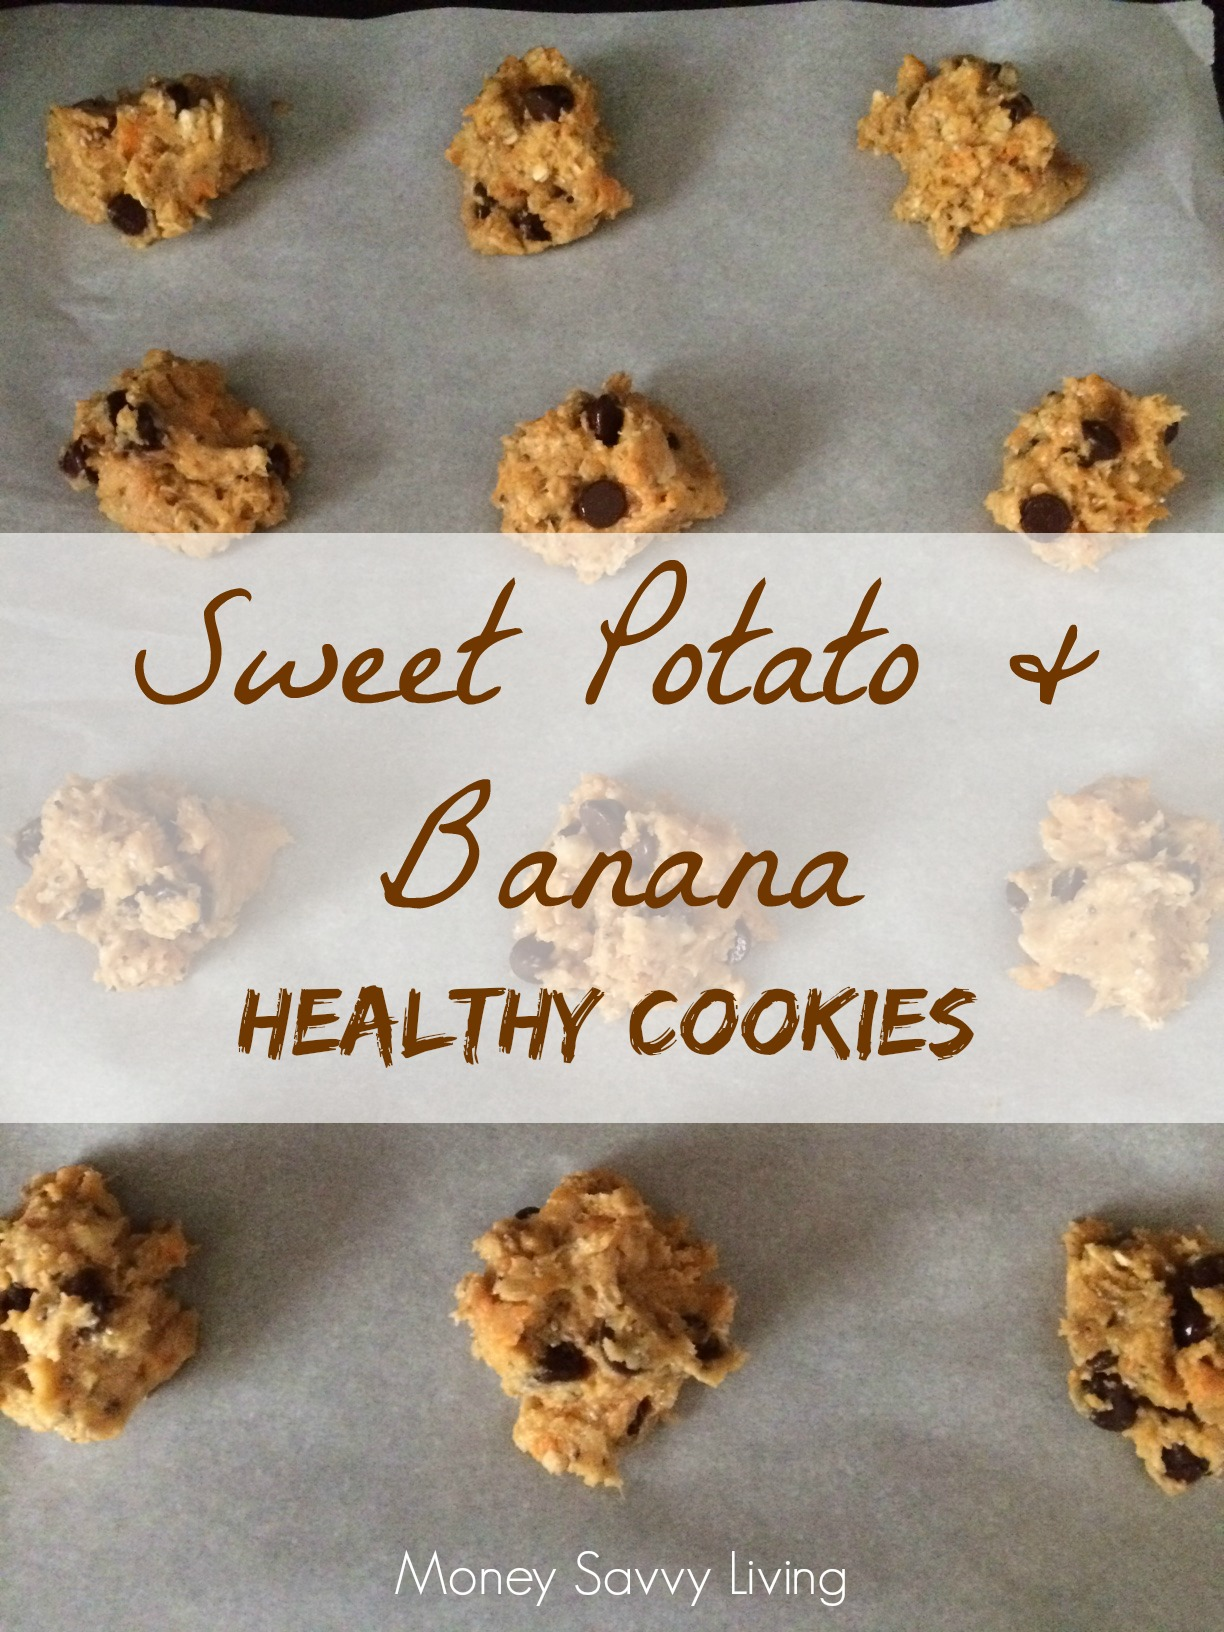 Sweet potato banana cookies | Money Savvy Living